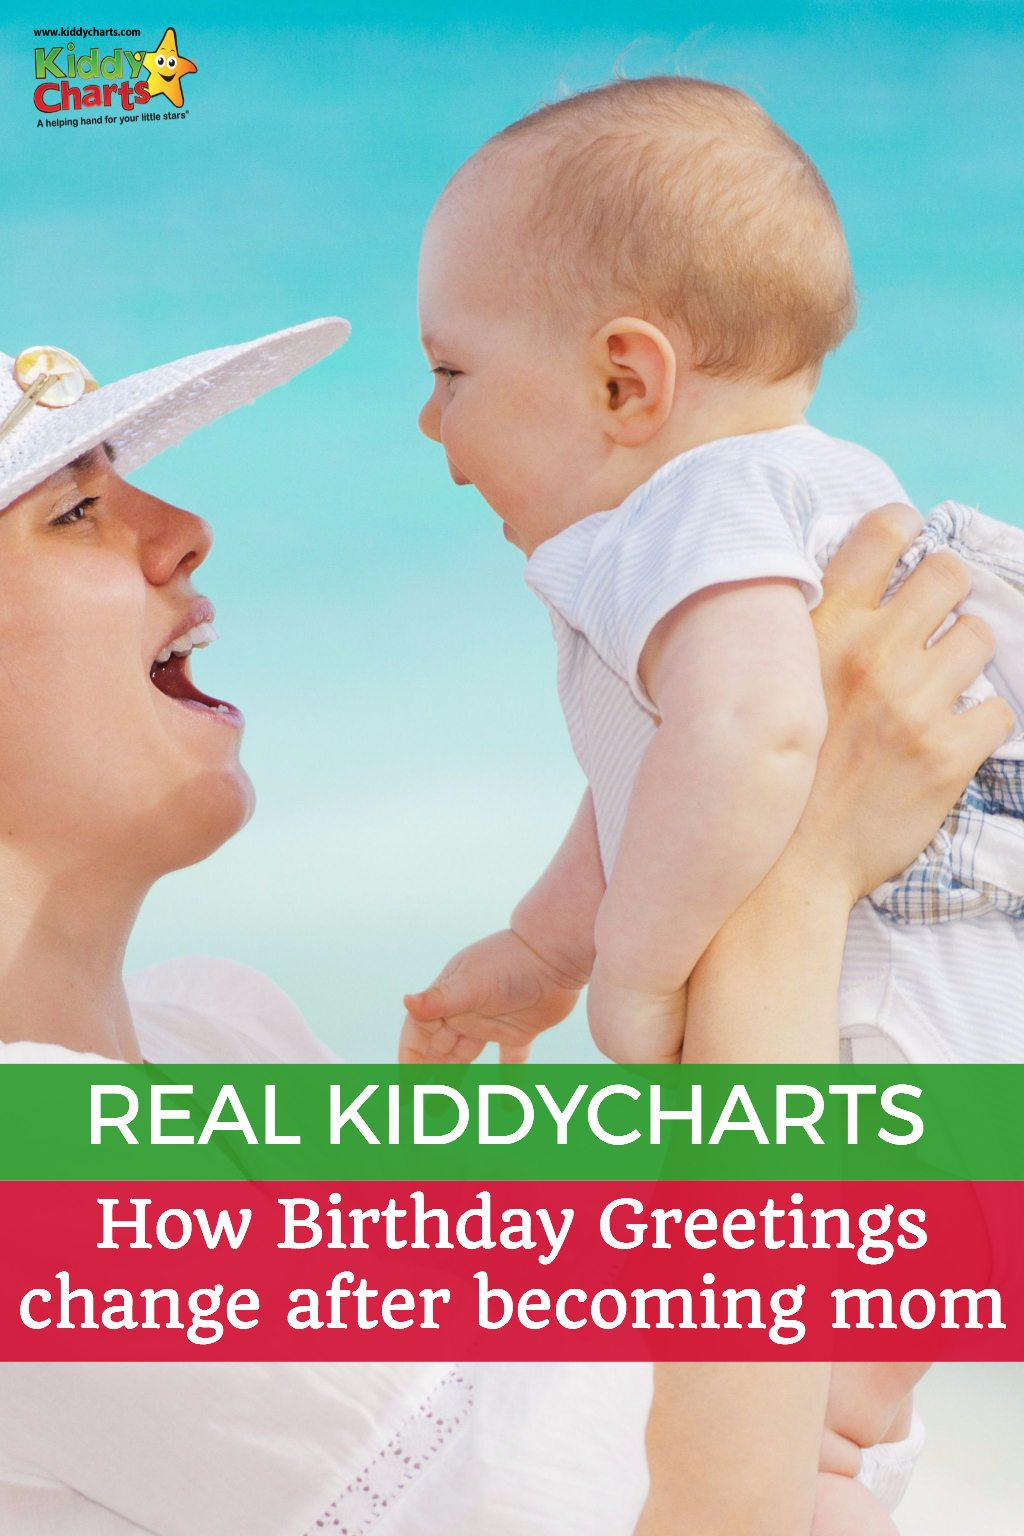 How have birhtday greetings and beyond changed after having kids - let's discuss it!